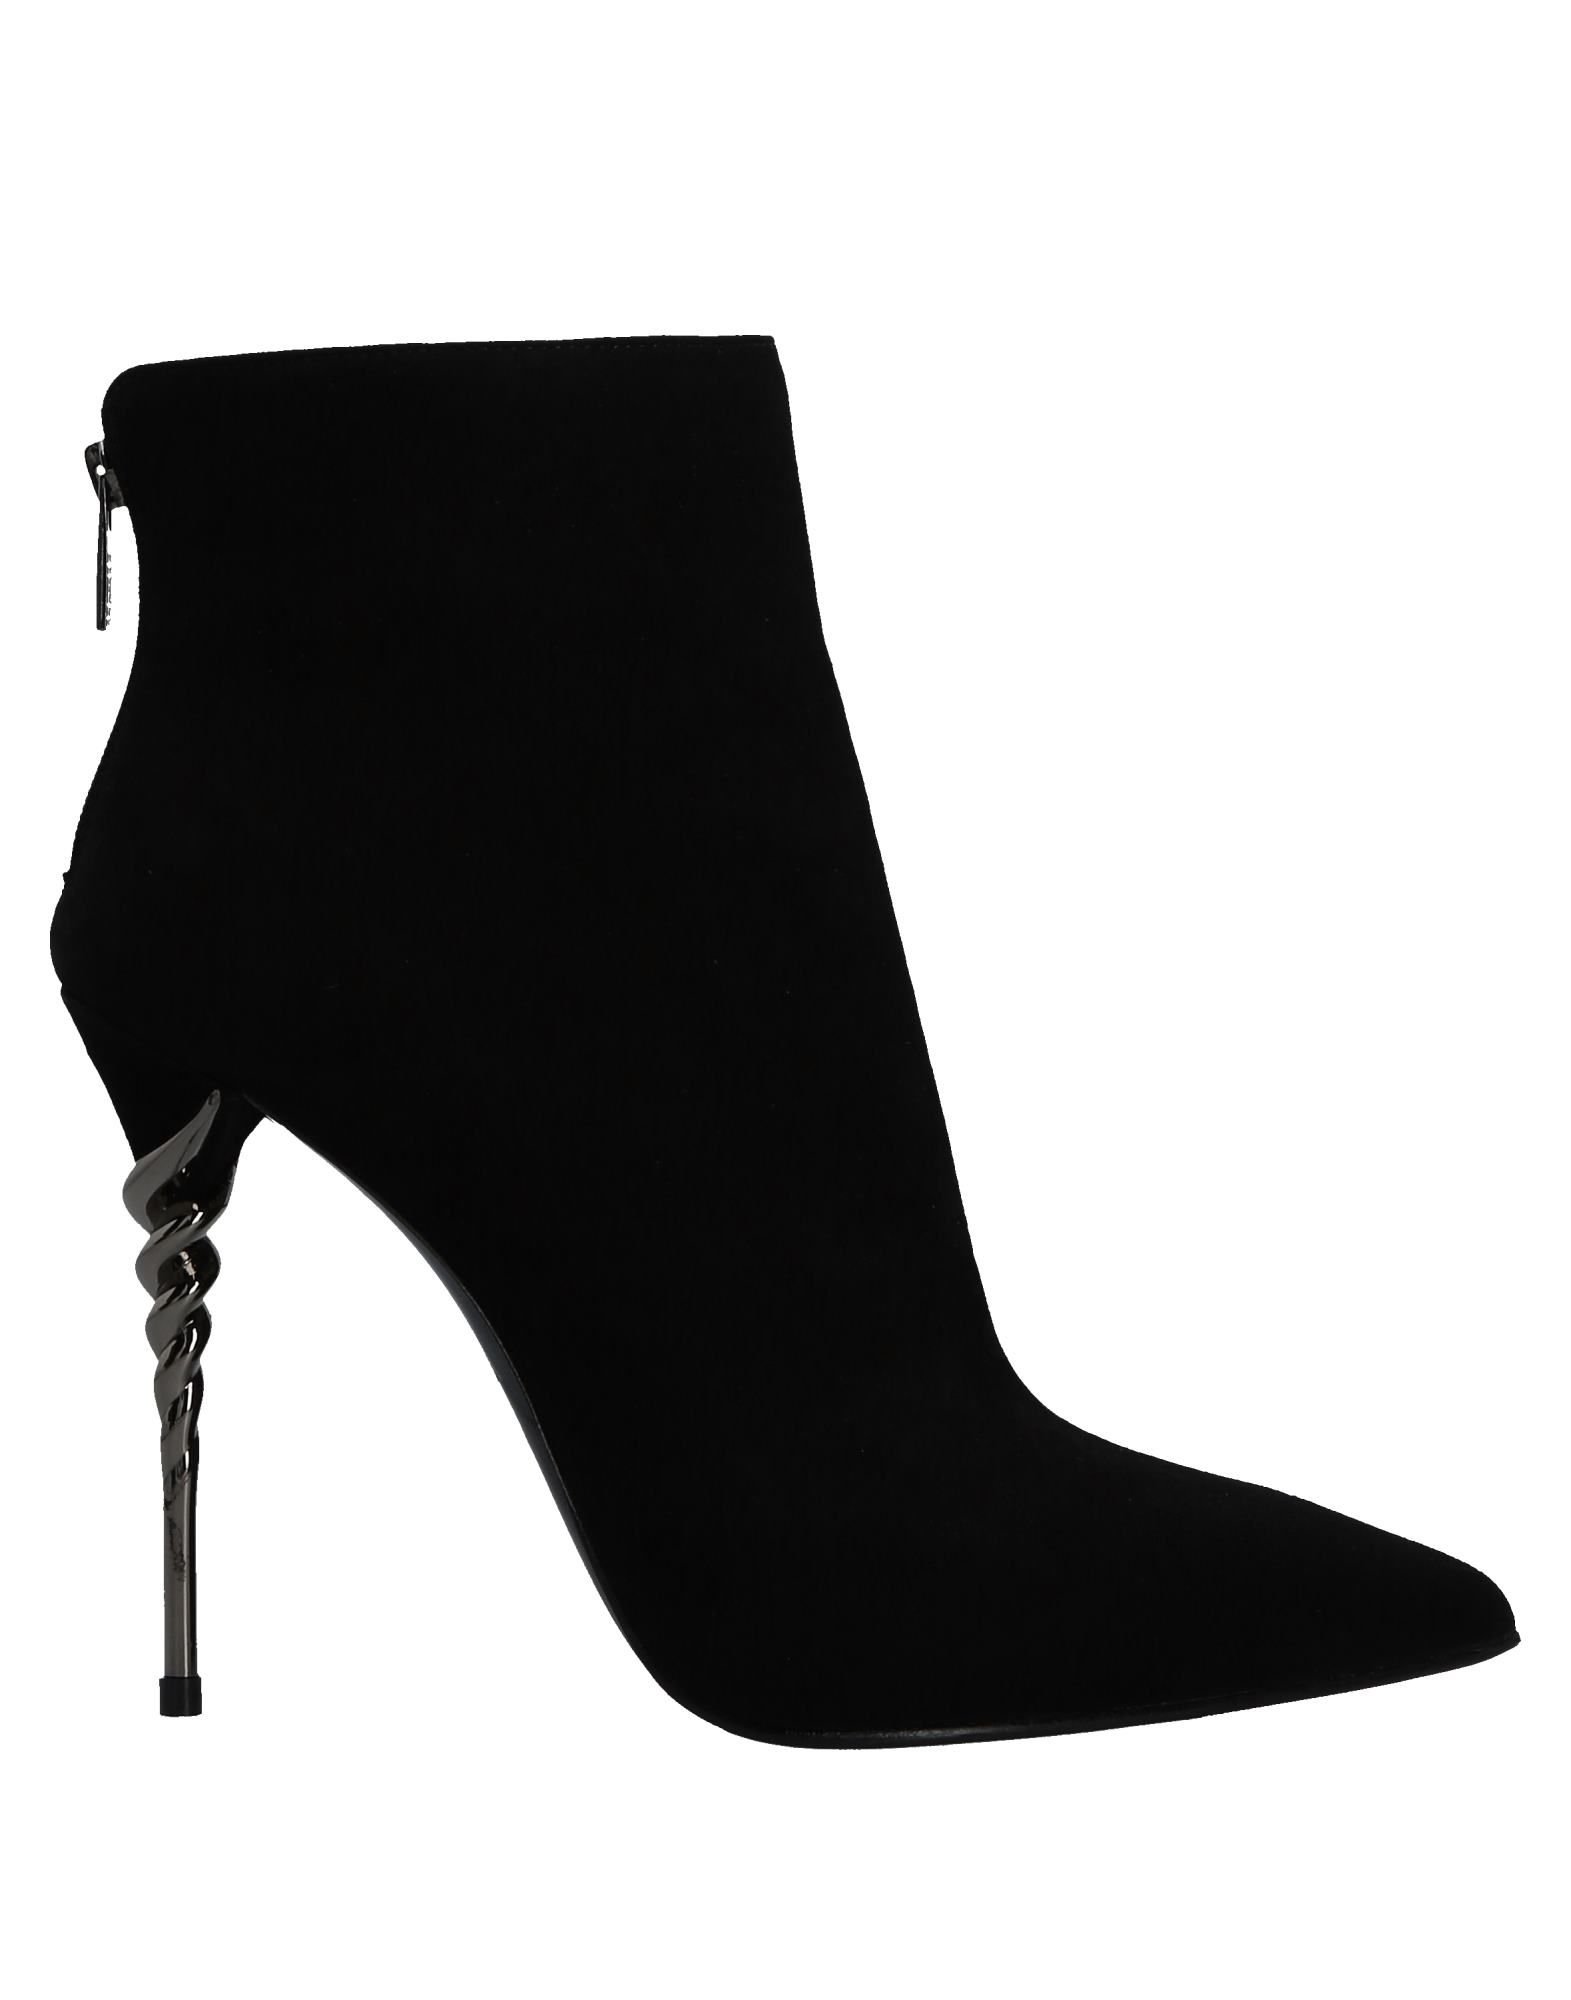 Le Silla Ankle boot